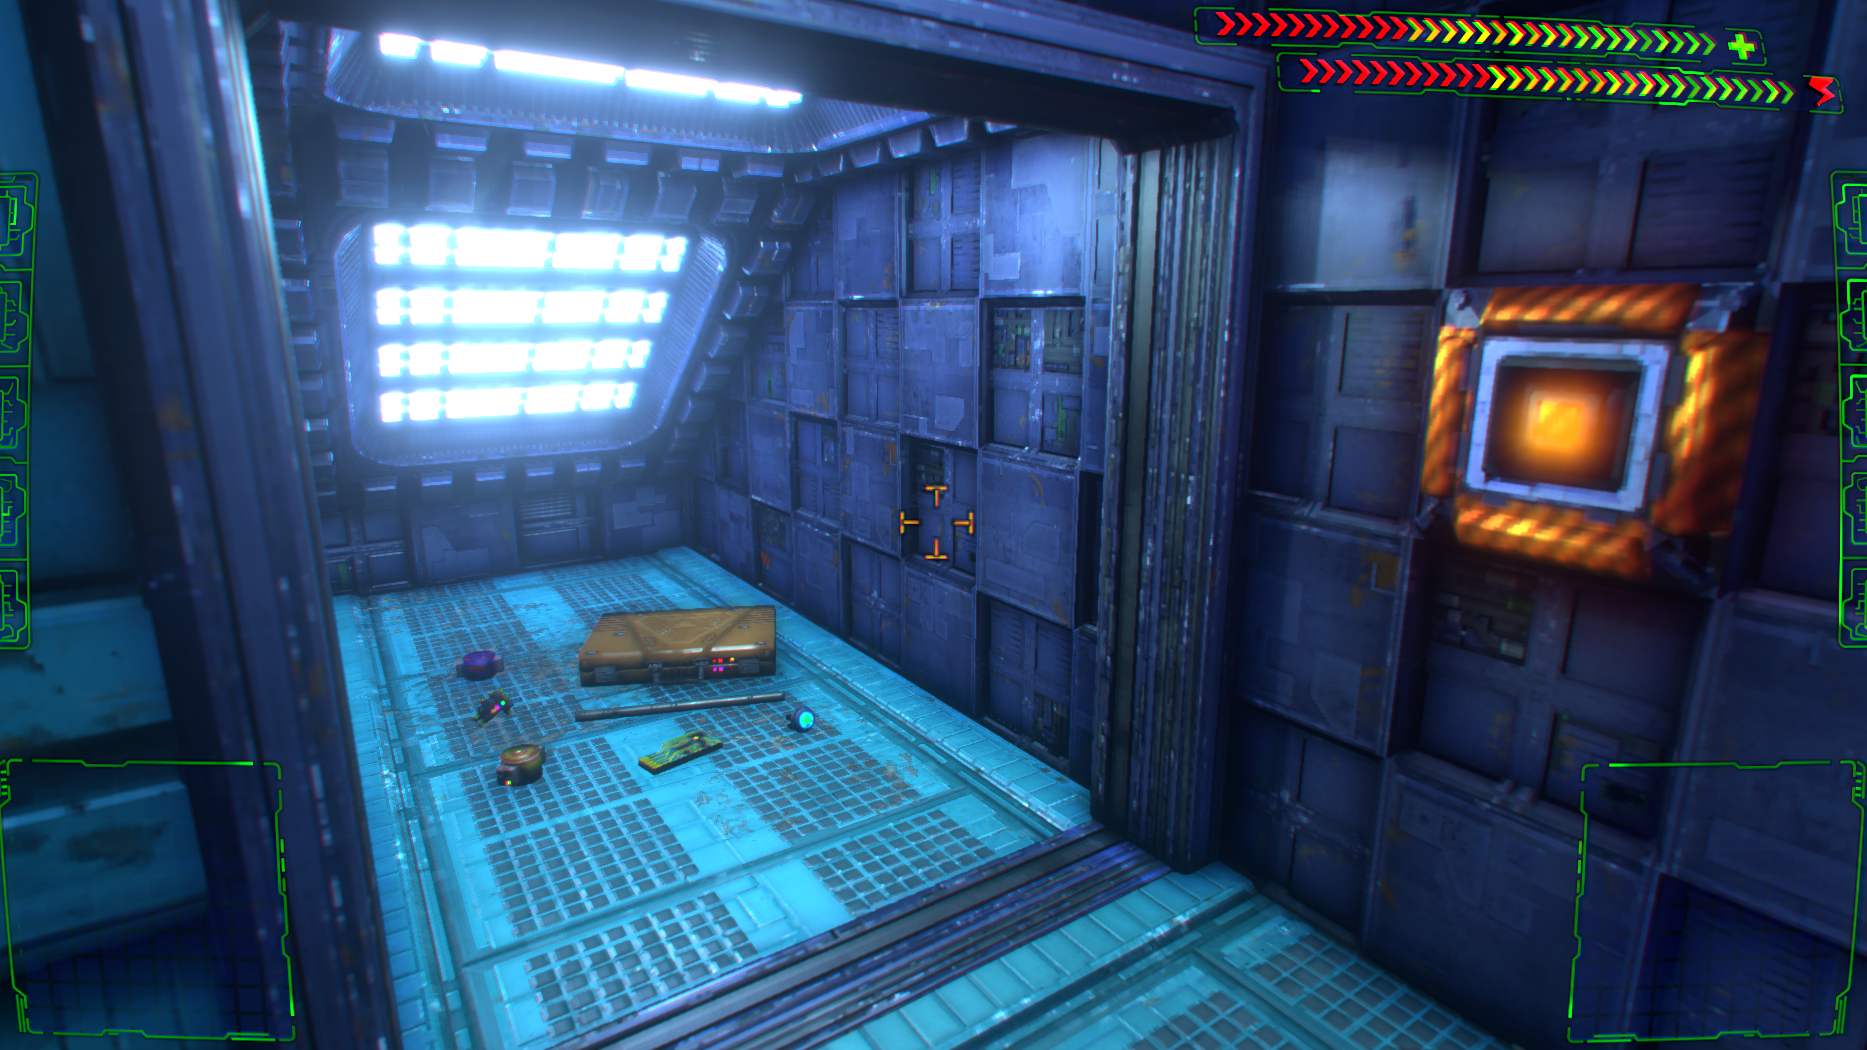 System Shock 3 has been revealed